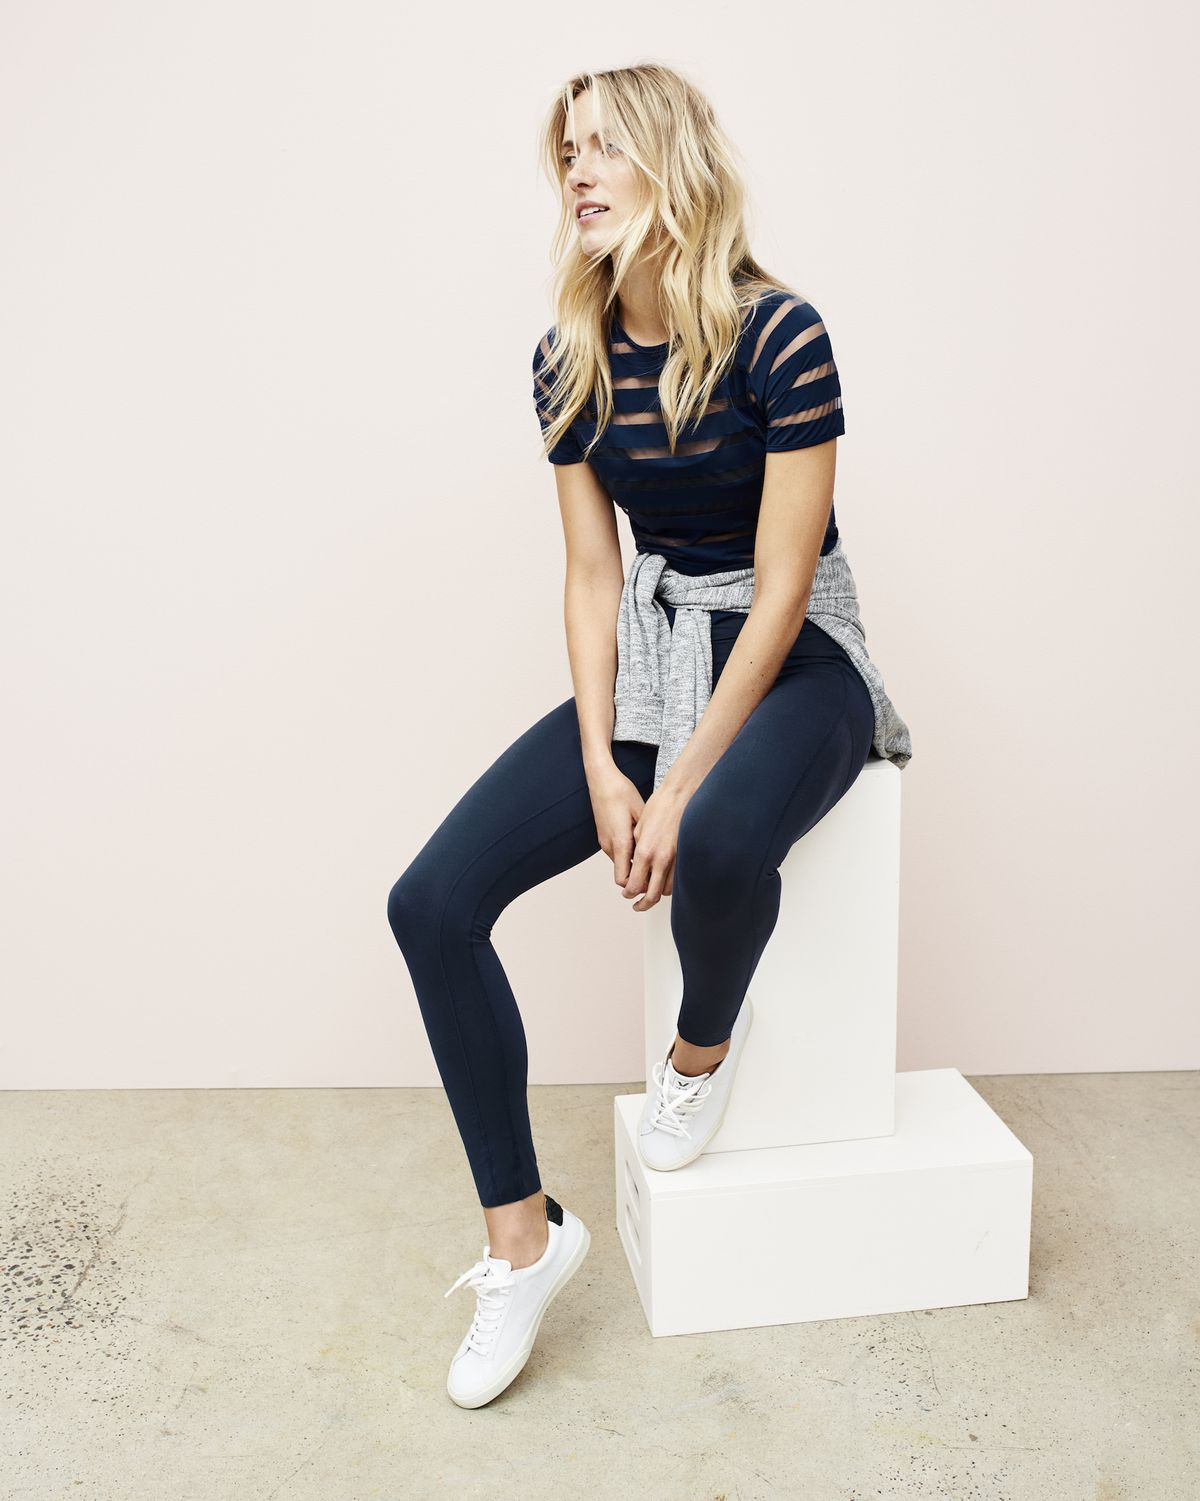 A model wearing navy blue leggings and a navy blue shirt